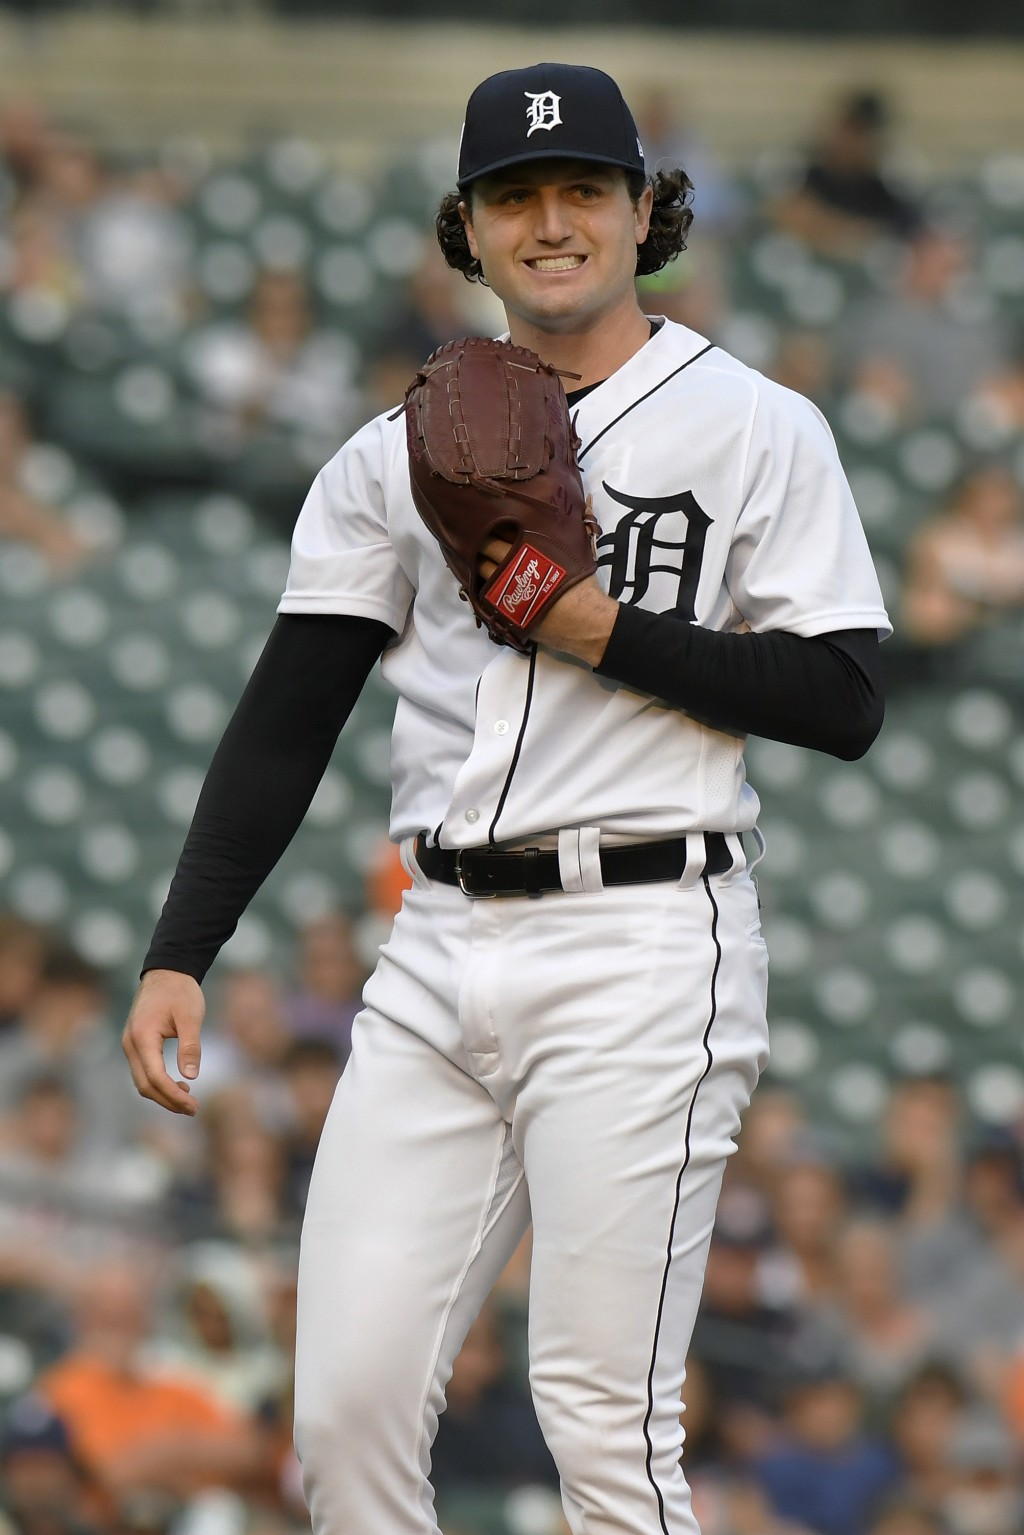 Detroit Tigers starting pitcher Casey Mize reacts after home plate umpire James Hoye called a ball on a pitch to a Tampa Bay Rays batter during the fi...